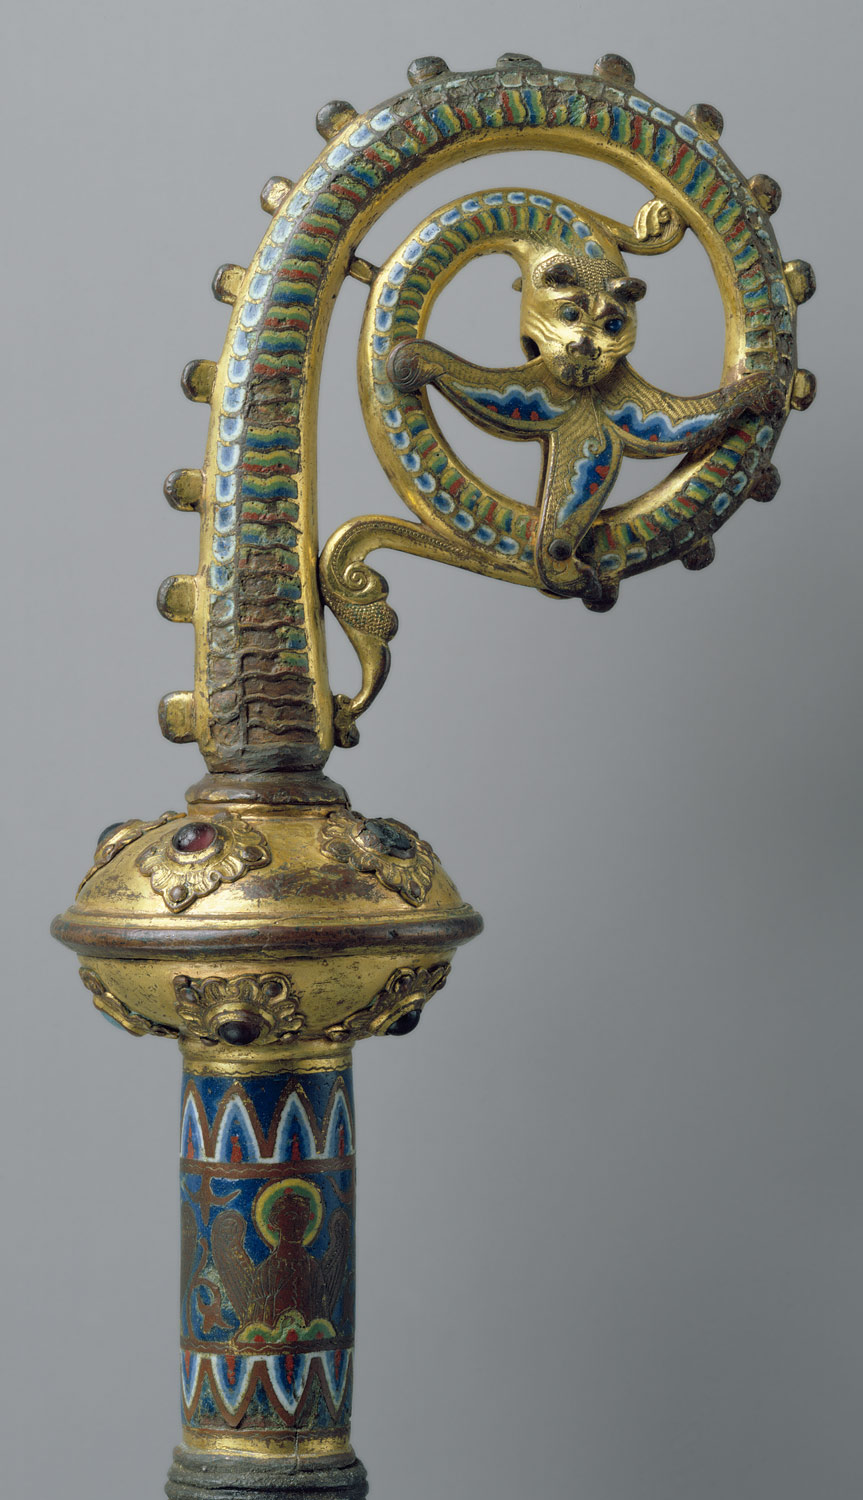 Head of a Crozier with a Serpent Devouring a Flower